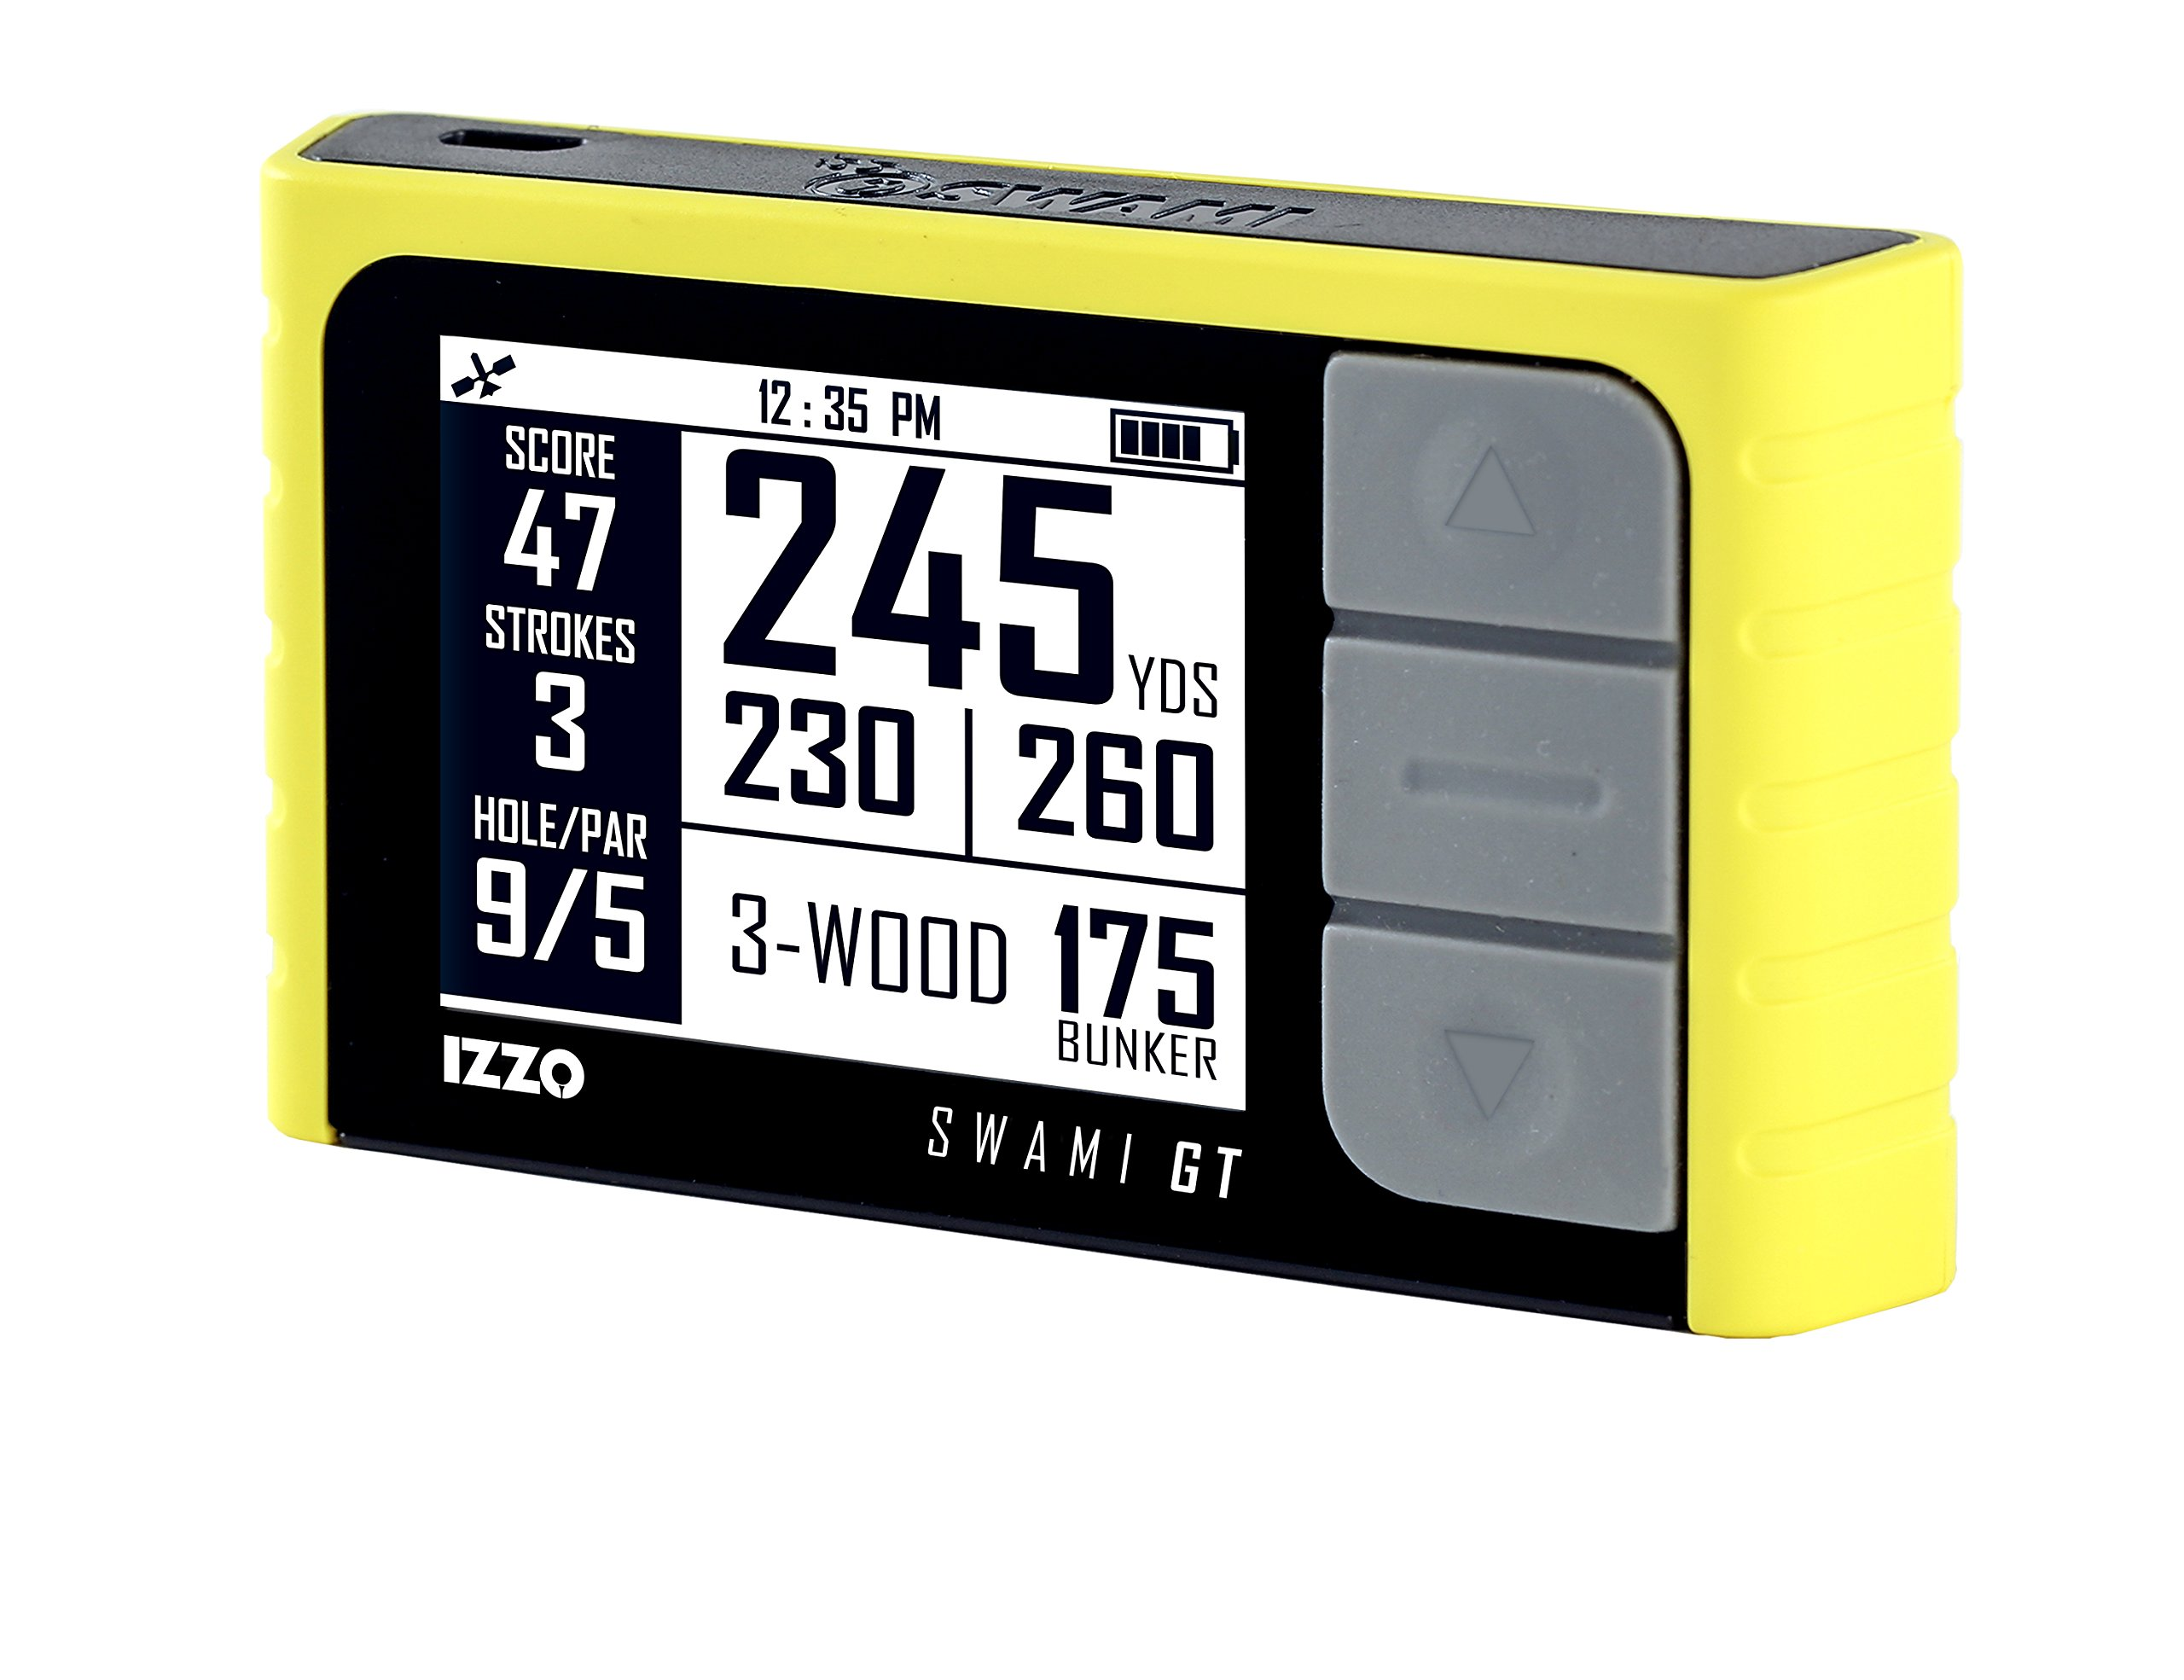 IZZO Golf Swami GT Game Tracker & GPS Tracking Device by IZZO Golf